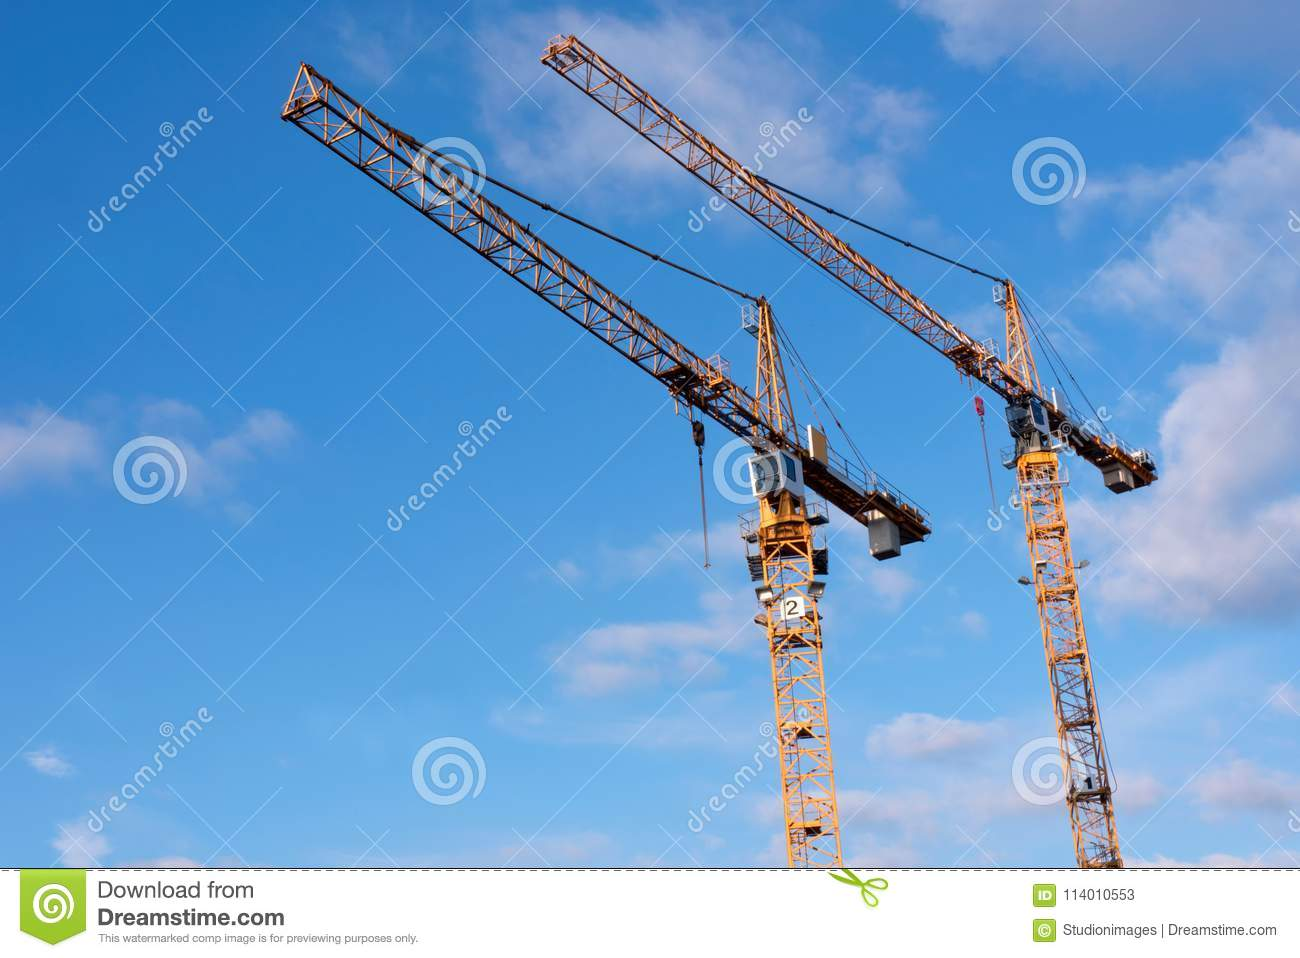 Two yellow construction cranes against blue sky with a few cloud